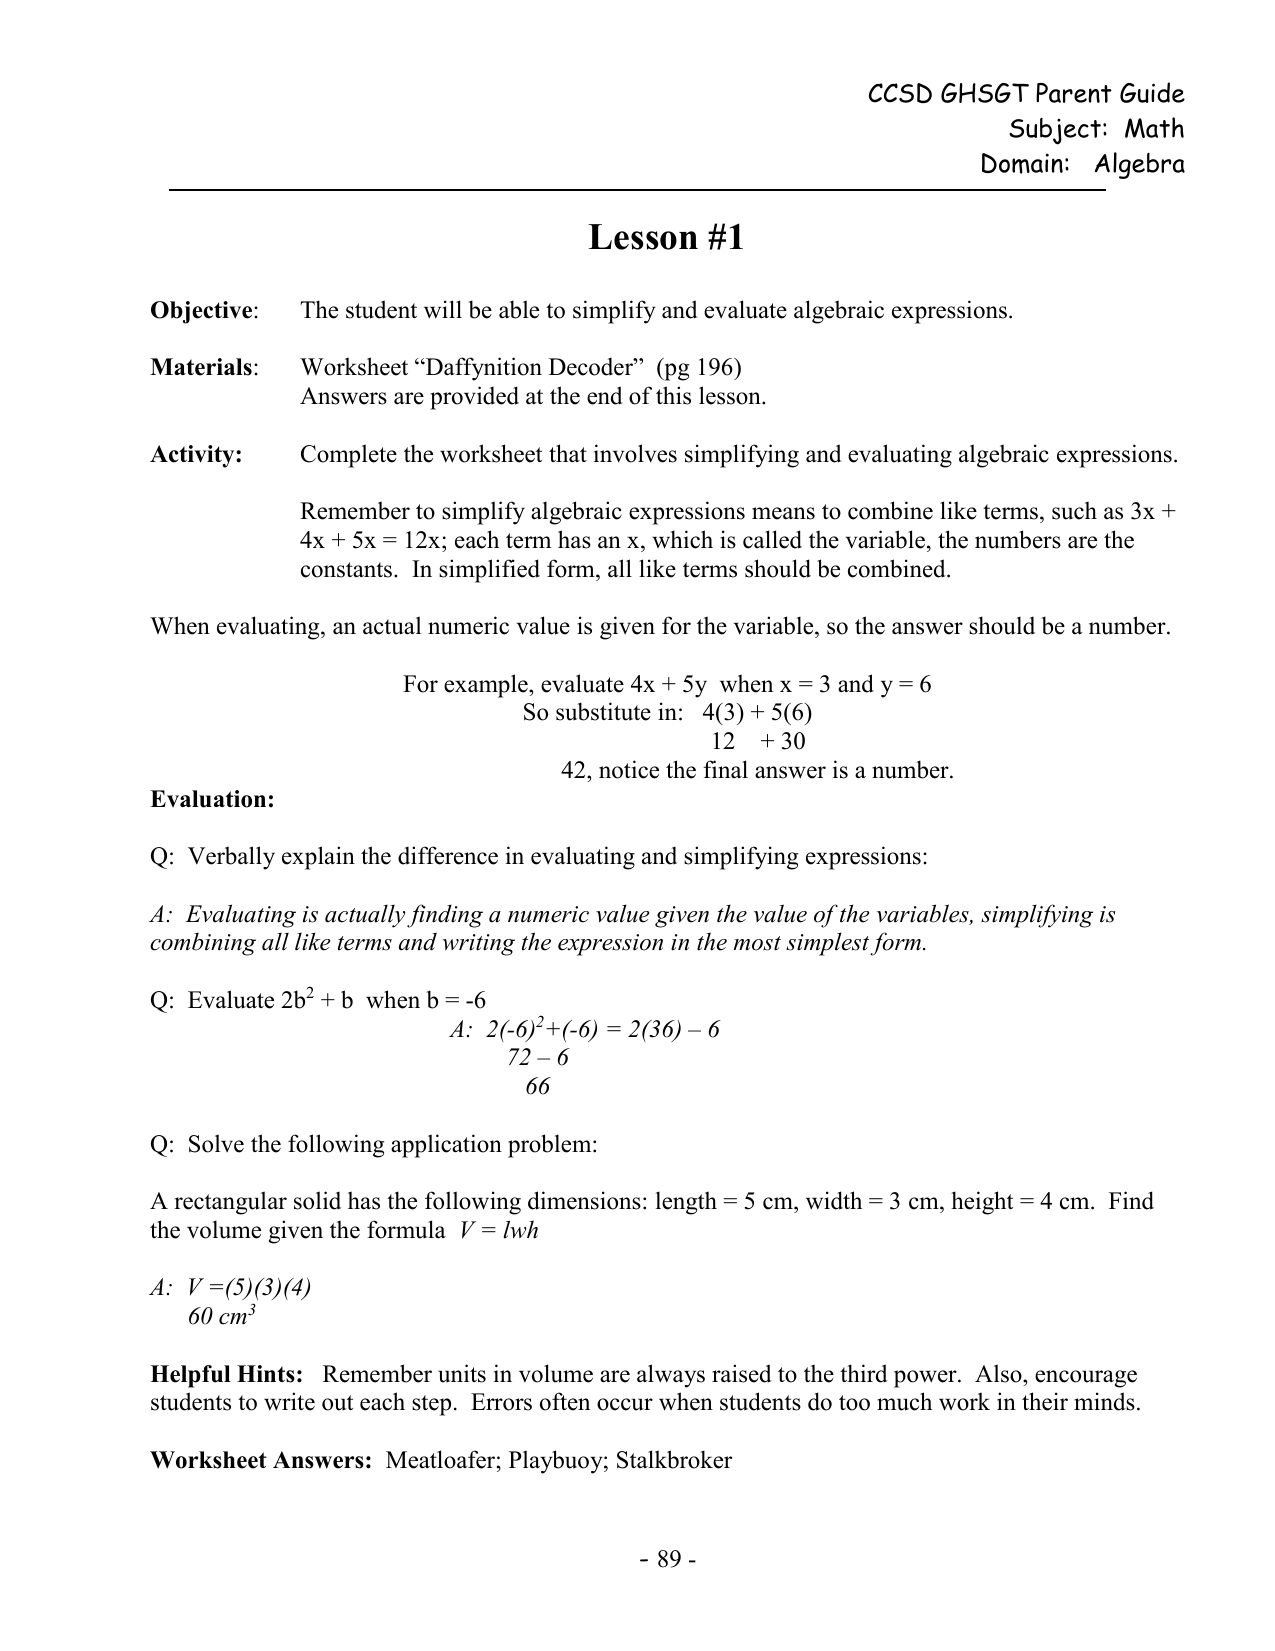 Worksheet Simplifying And Evaluating Expressions